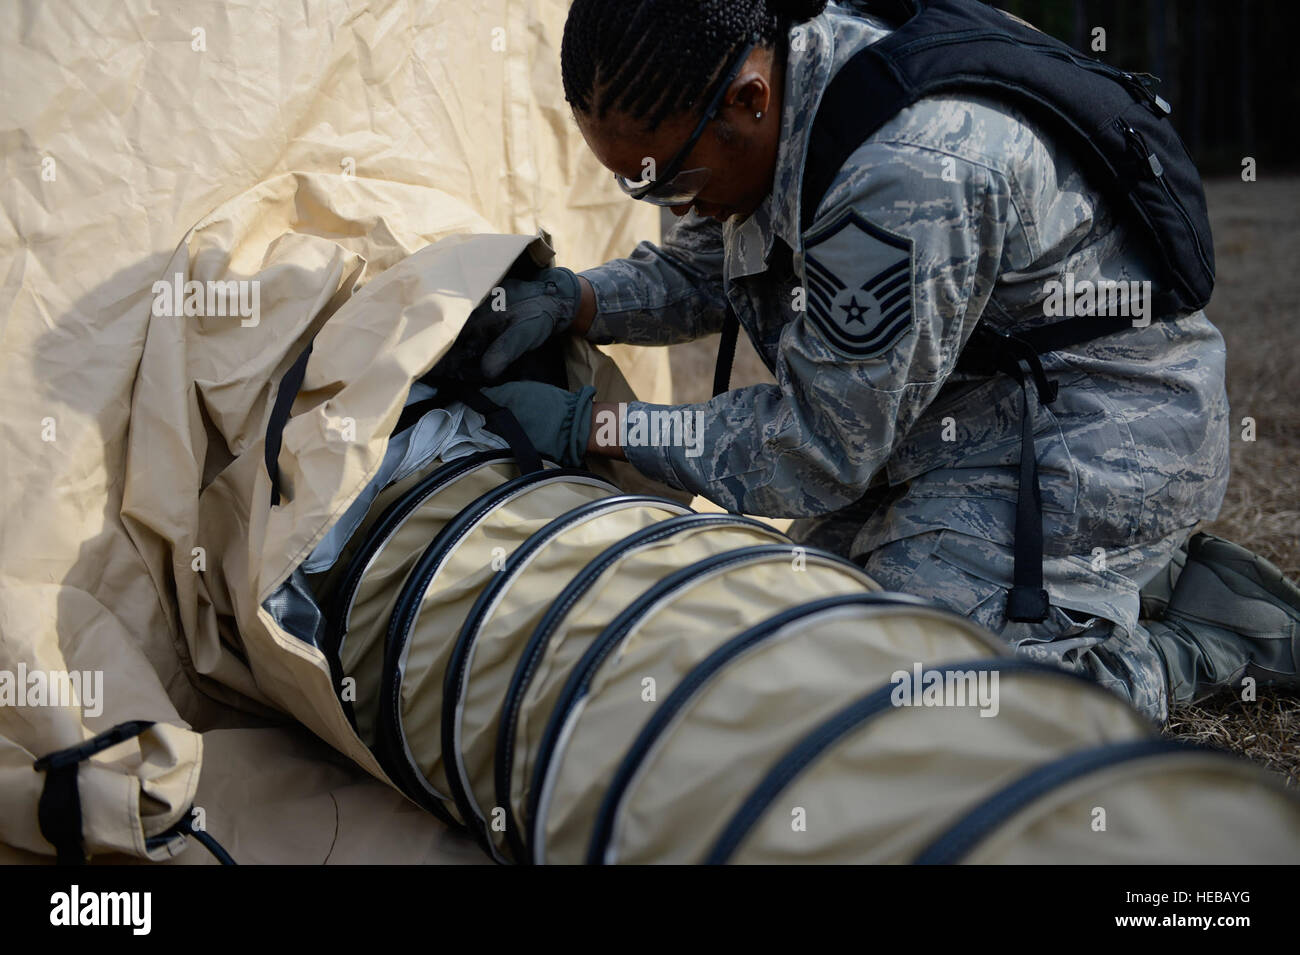 U.S. Air Force Master Sgt. Luella DeLee, with the 1st Combat Camera Squadron, positions a heating vent inside a - Stock Image